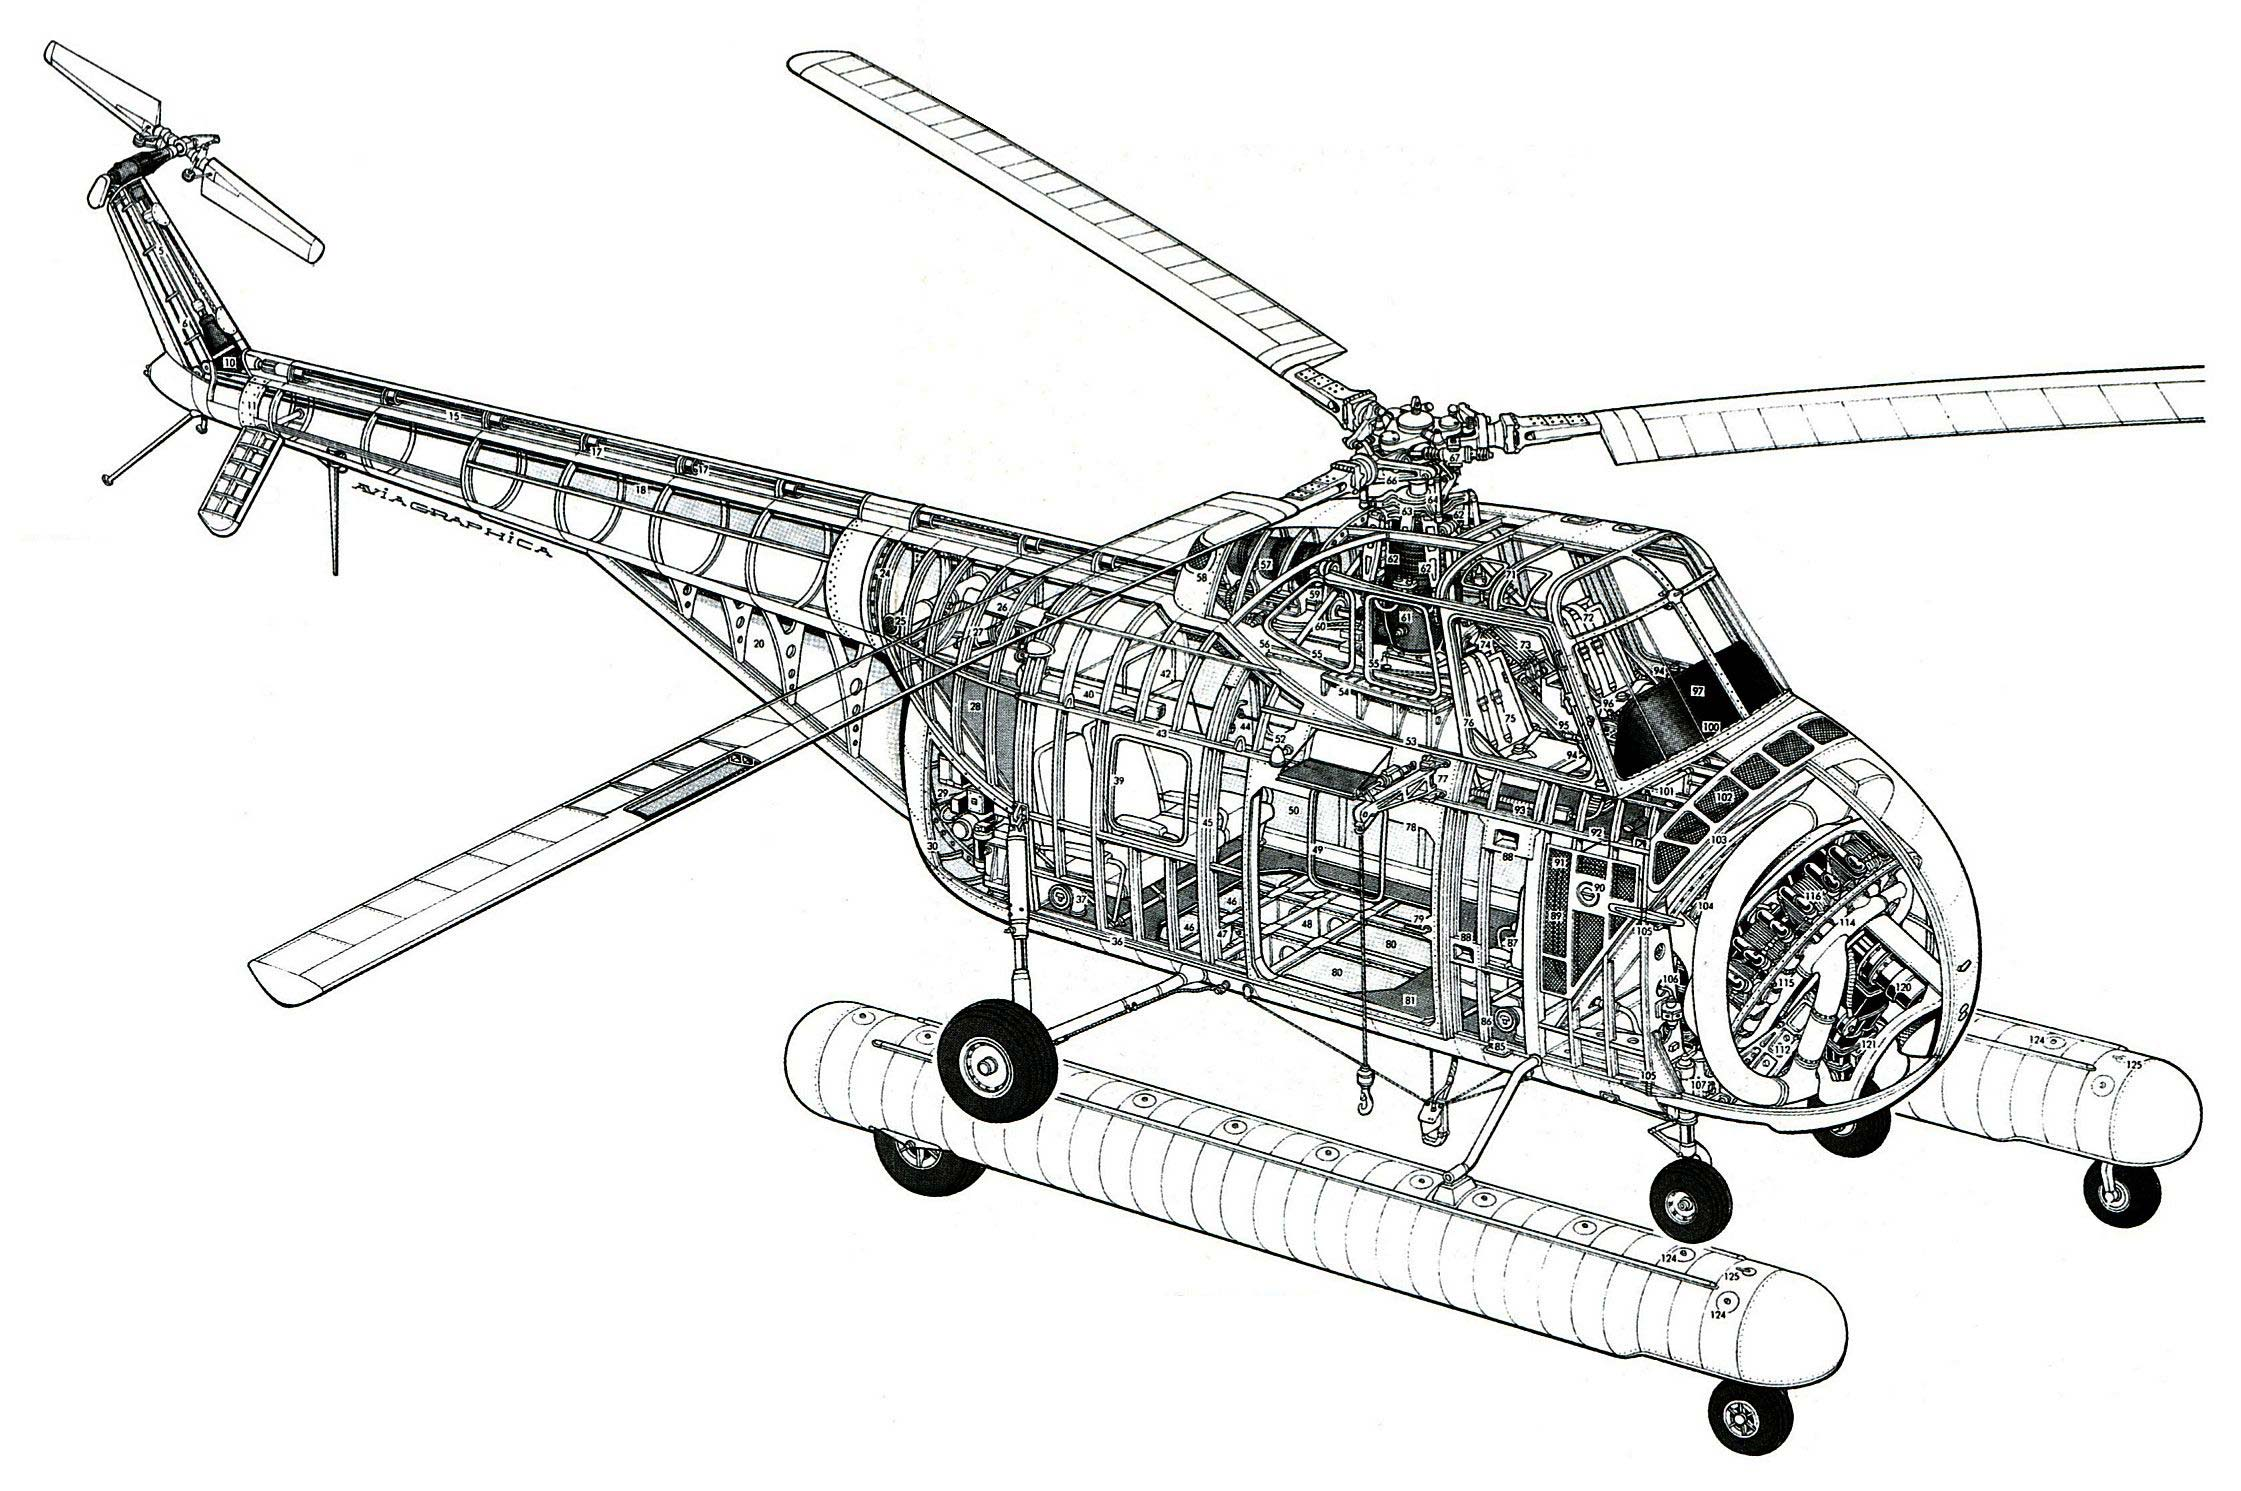 Sikorsky H-19 Chickasaw cutaway